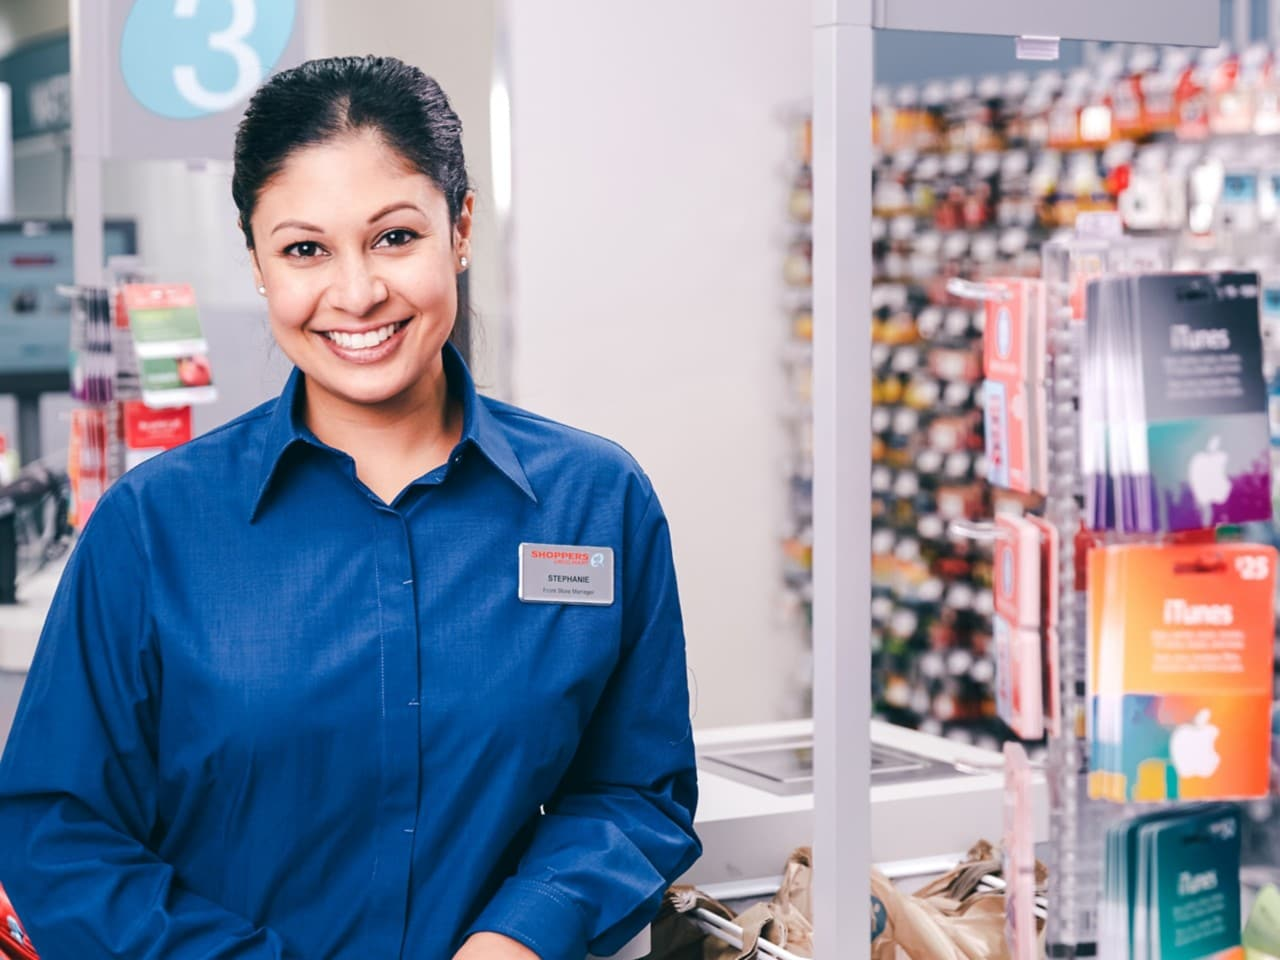 Woman smiling in a Shoppers Drug Mart wearing blue colllared shirt